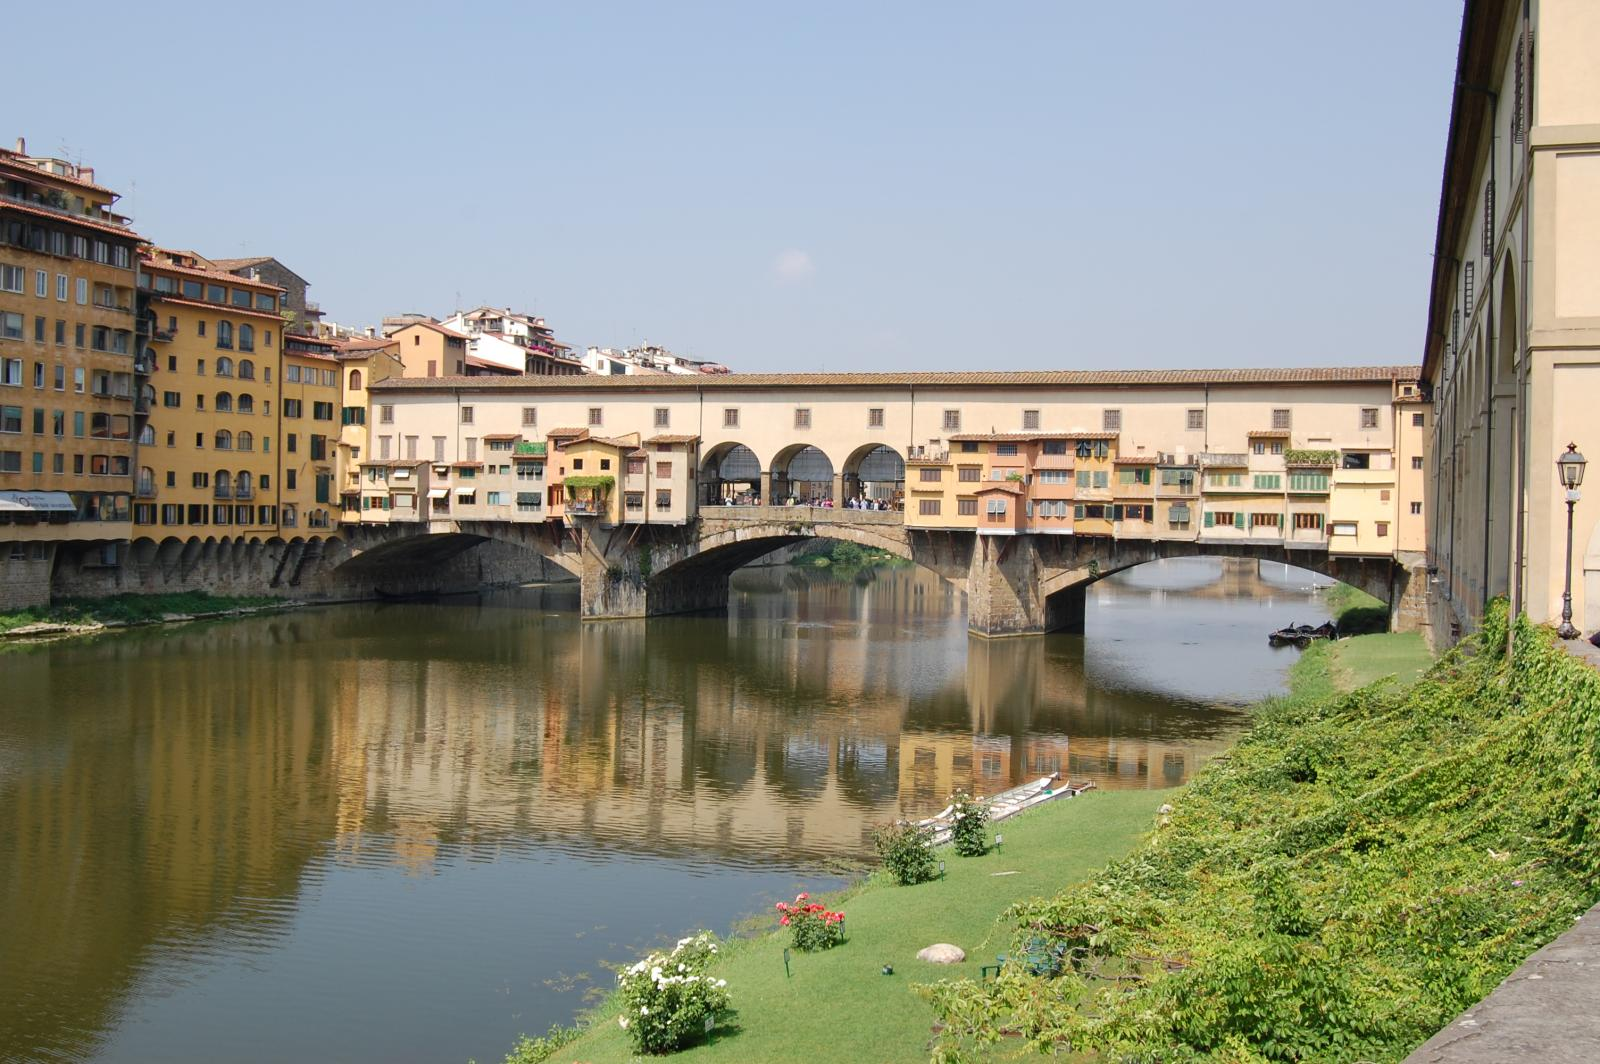 Firenze - Ponte Vecchio over the Arno river (from medevial butchers to current jewellers who don't pollute the river as butchers used to :-)